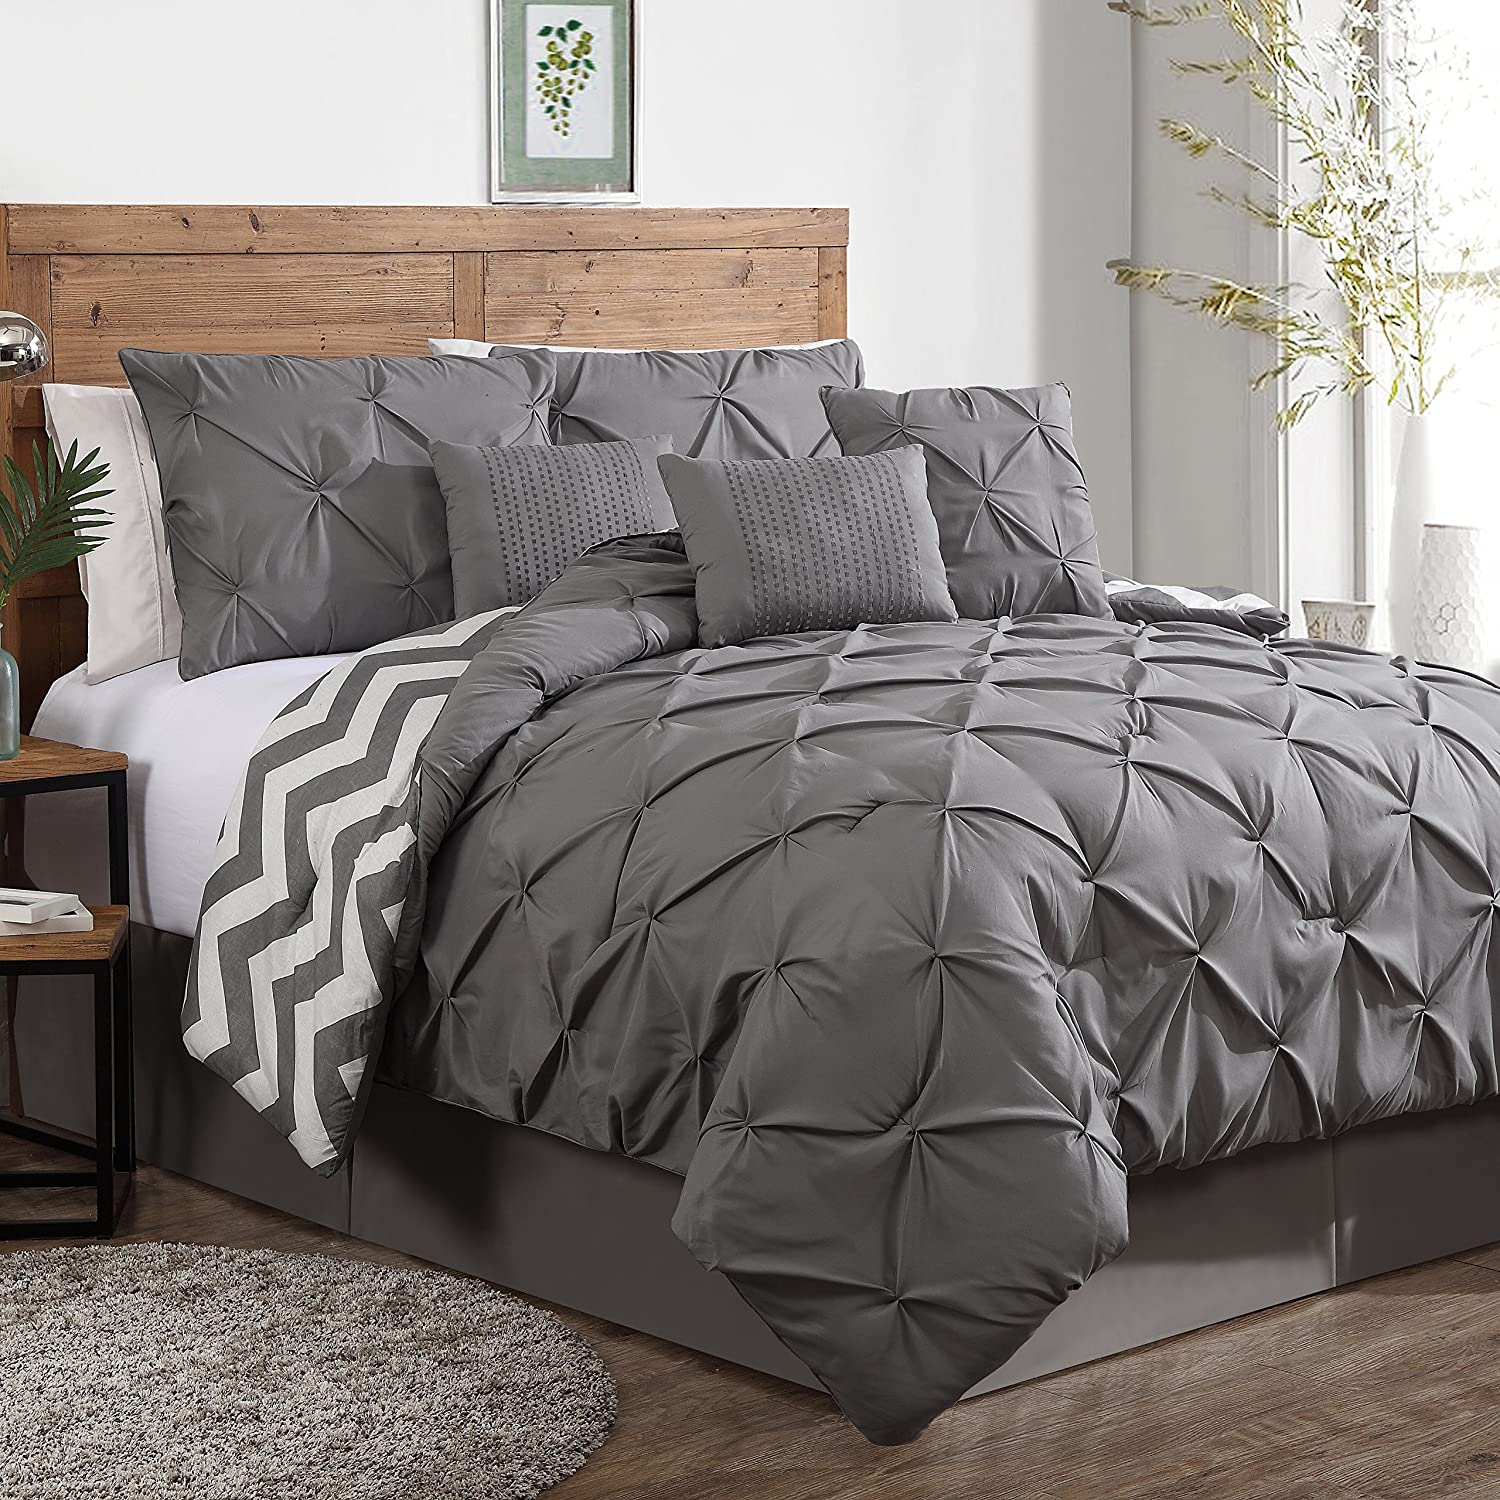 charcoal floral comforter bedding free shipping dark overstock set today bath vera grey wang product